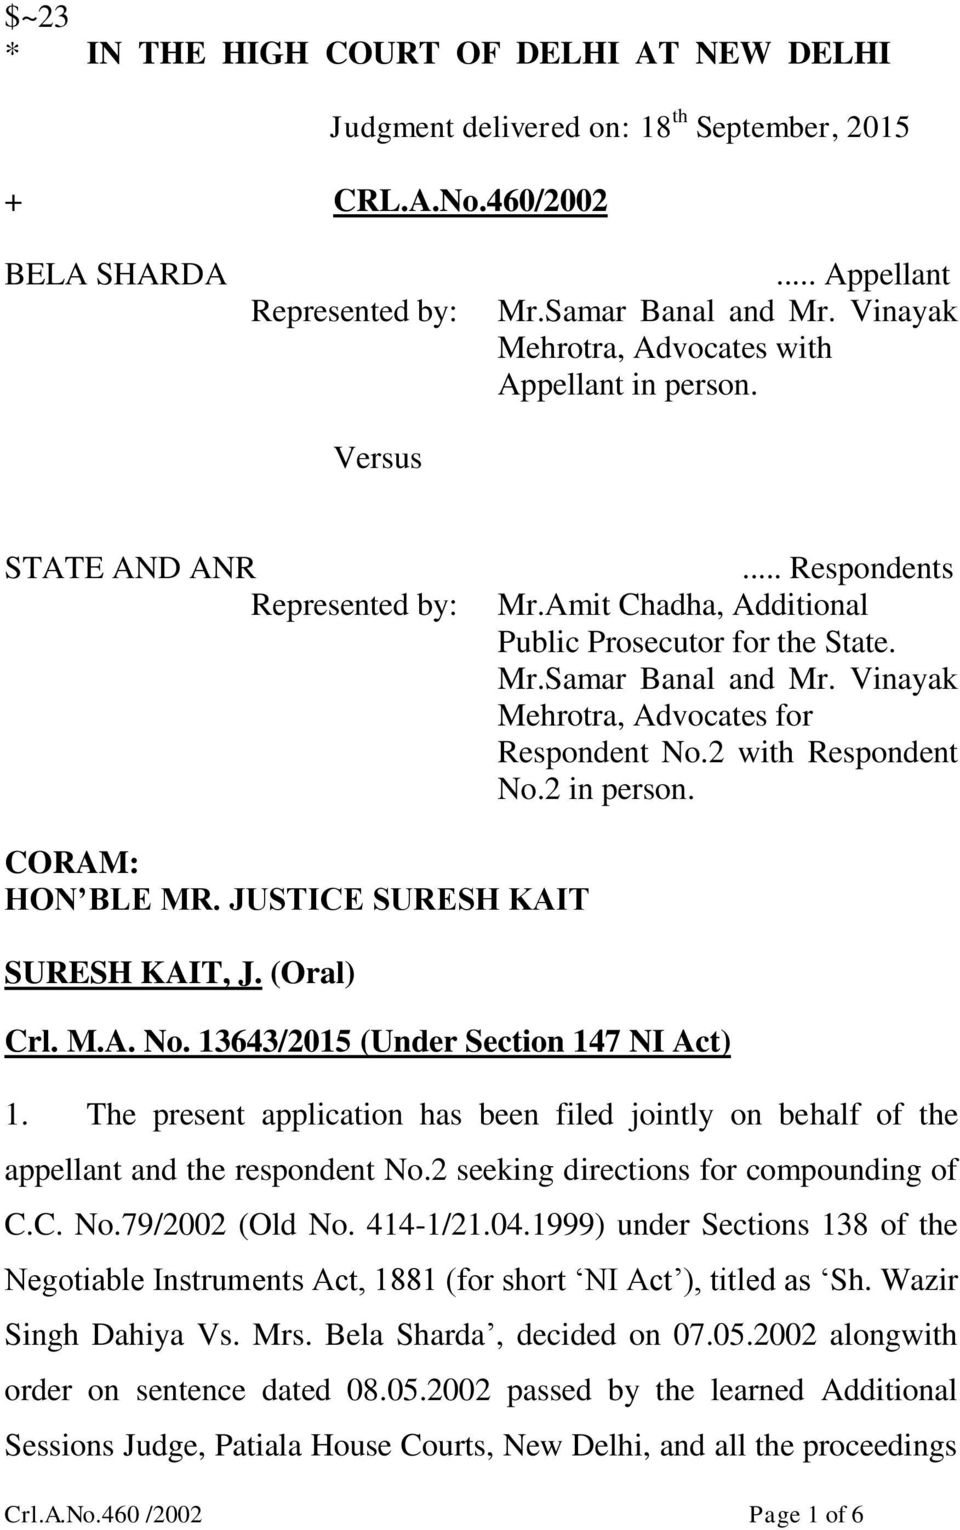 Vinayak Mehrotra, Advocates for Respondent No.2 with Respondent No.2 in person. CORAM: HON BLE MR. JUSTICE SURESH KAIT SURESH KAIT, J. (Oral) Crl. M.A. No. 13643/2015 (Under Section 147 NI Act) 1.